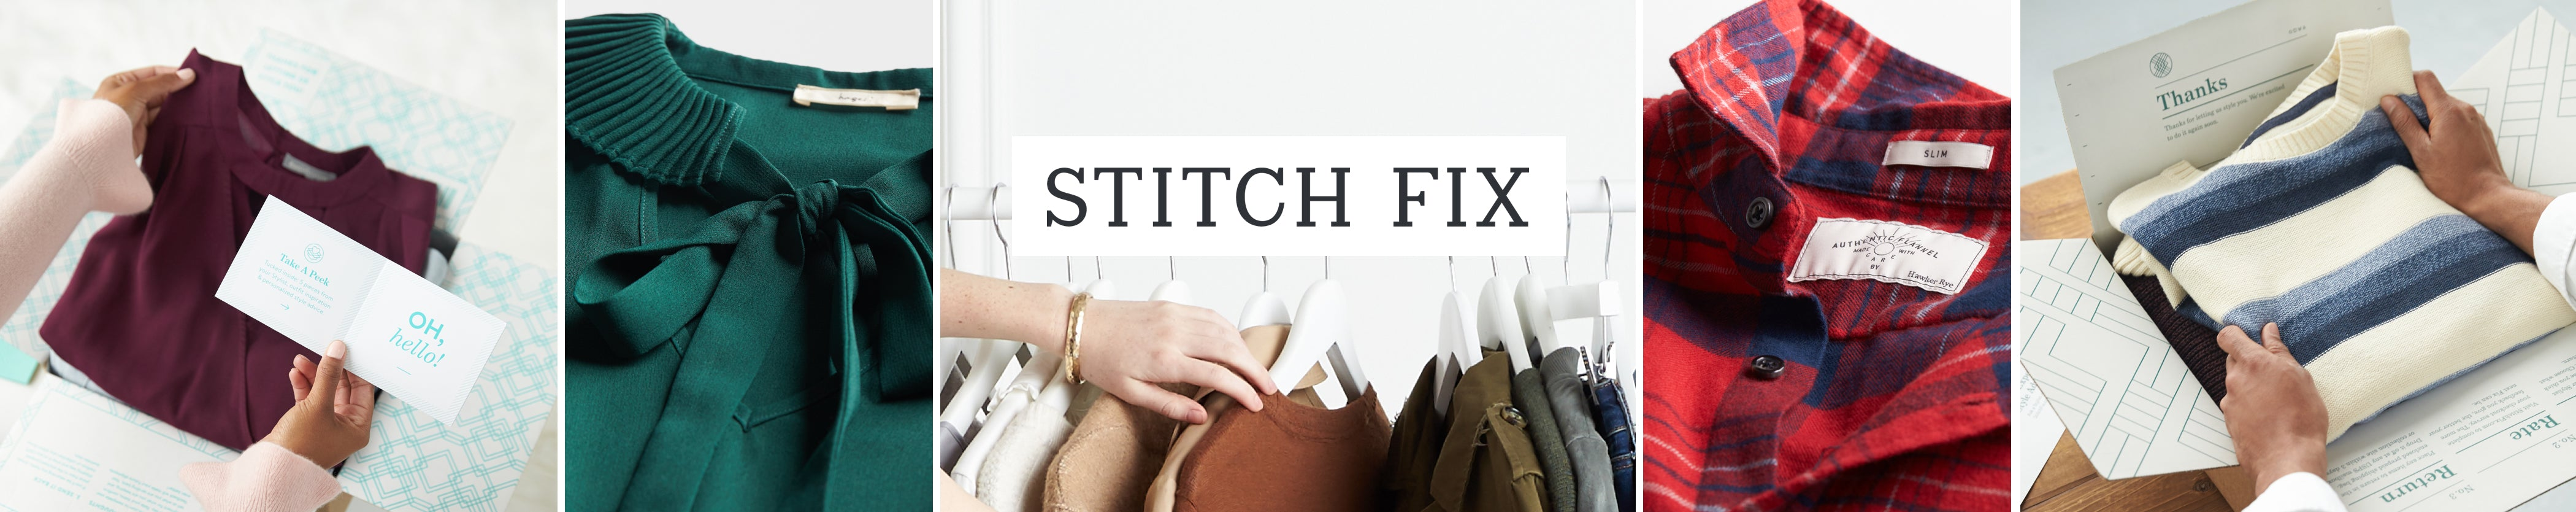 Stitch Fix: Post-IPO Diagnostic - Styleintelligence - Report